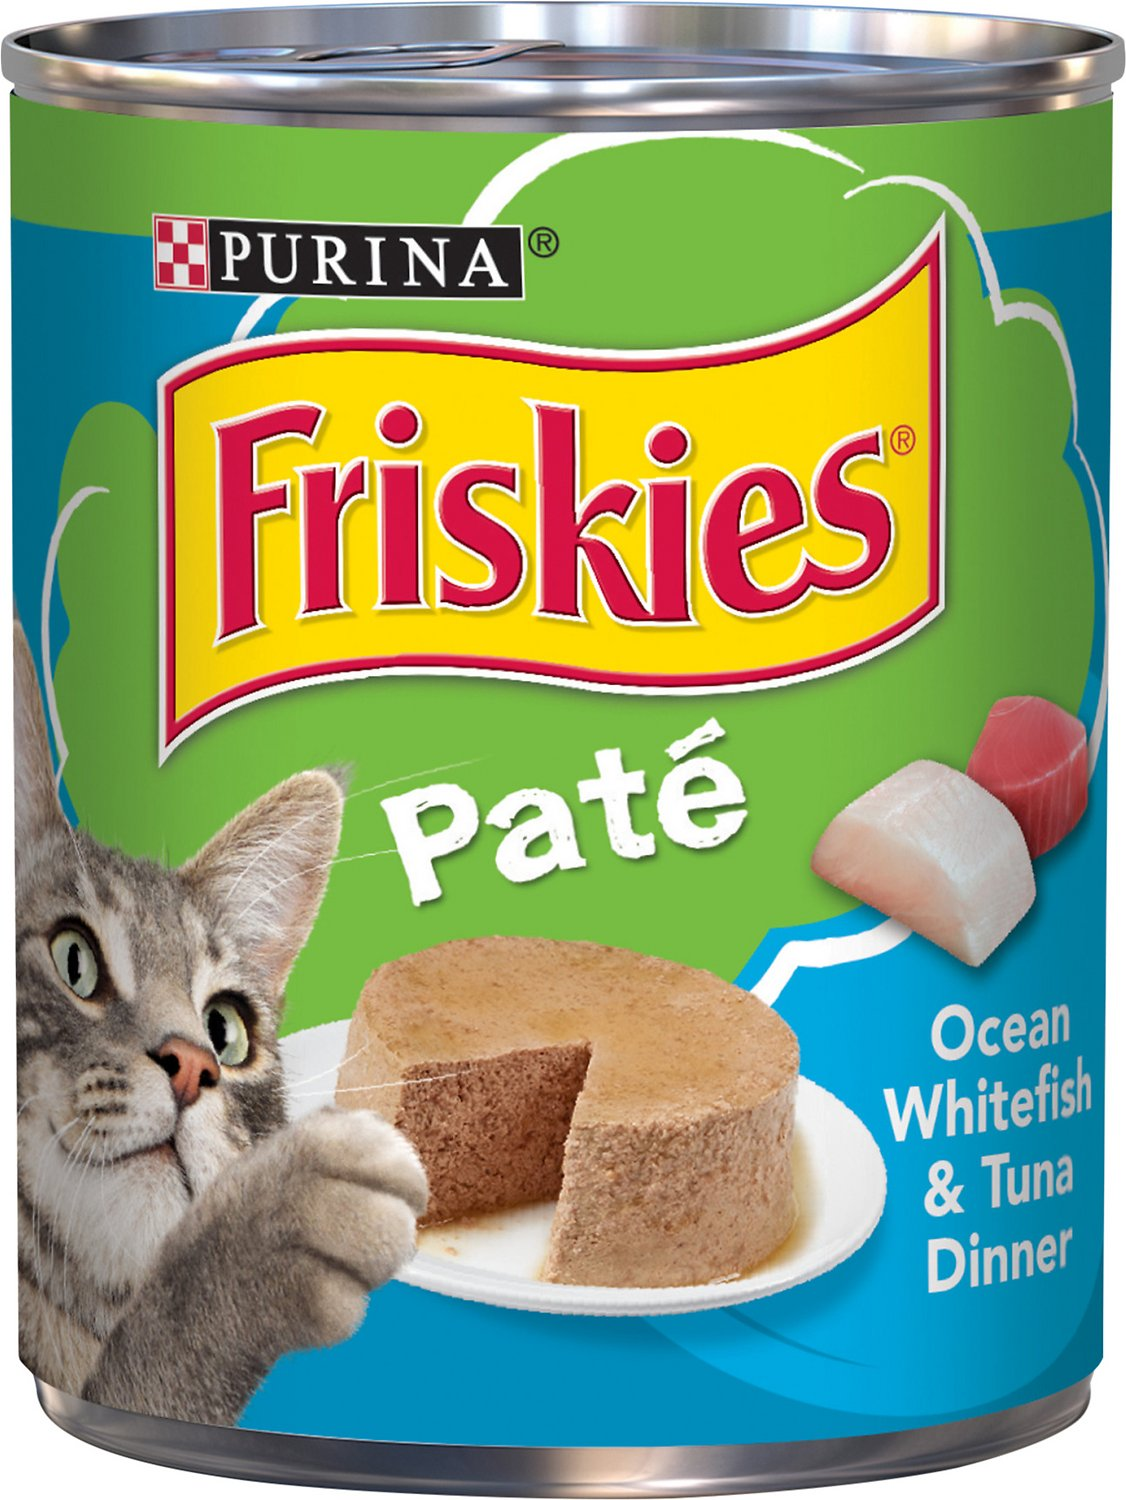 Friskies Pate Canned Cat Food